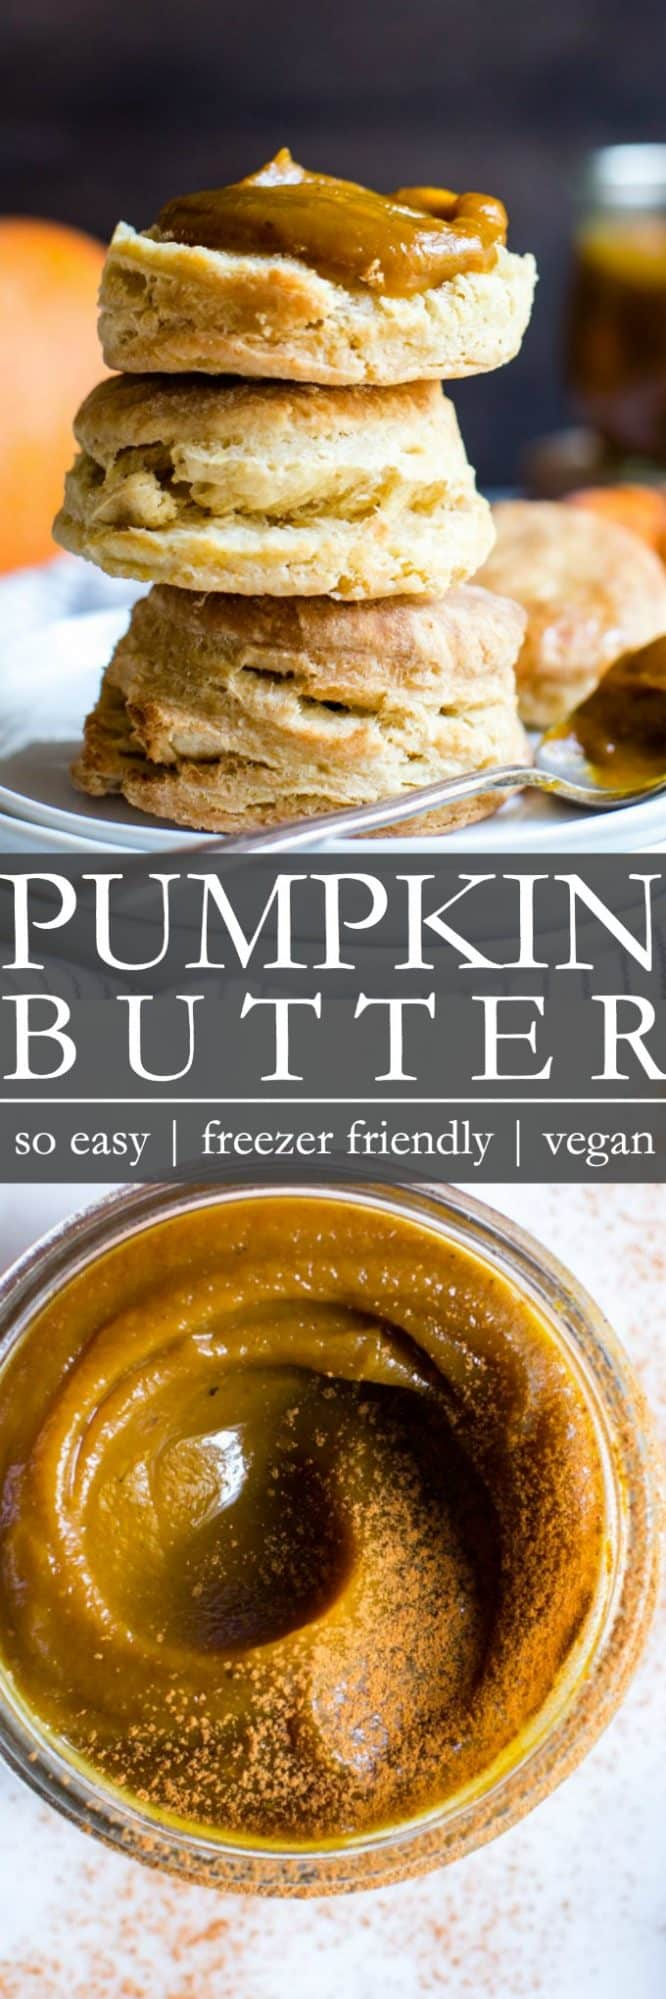 Homemade Easy Pumpkin Butter Recipe - Freezer Friendly and Vegan